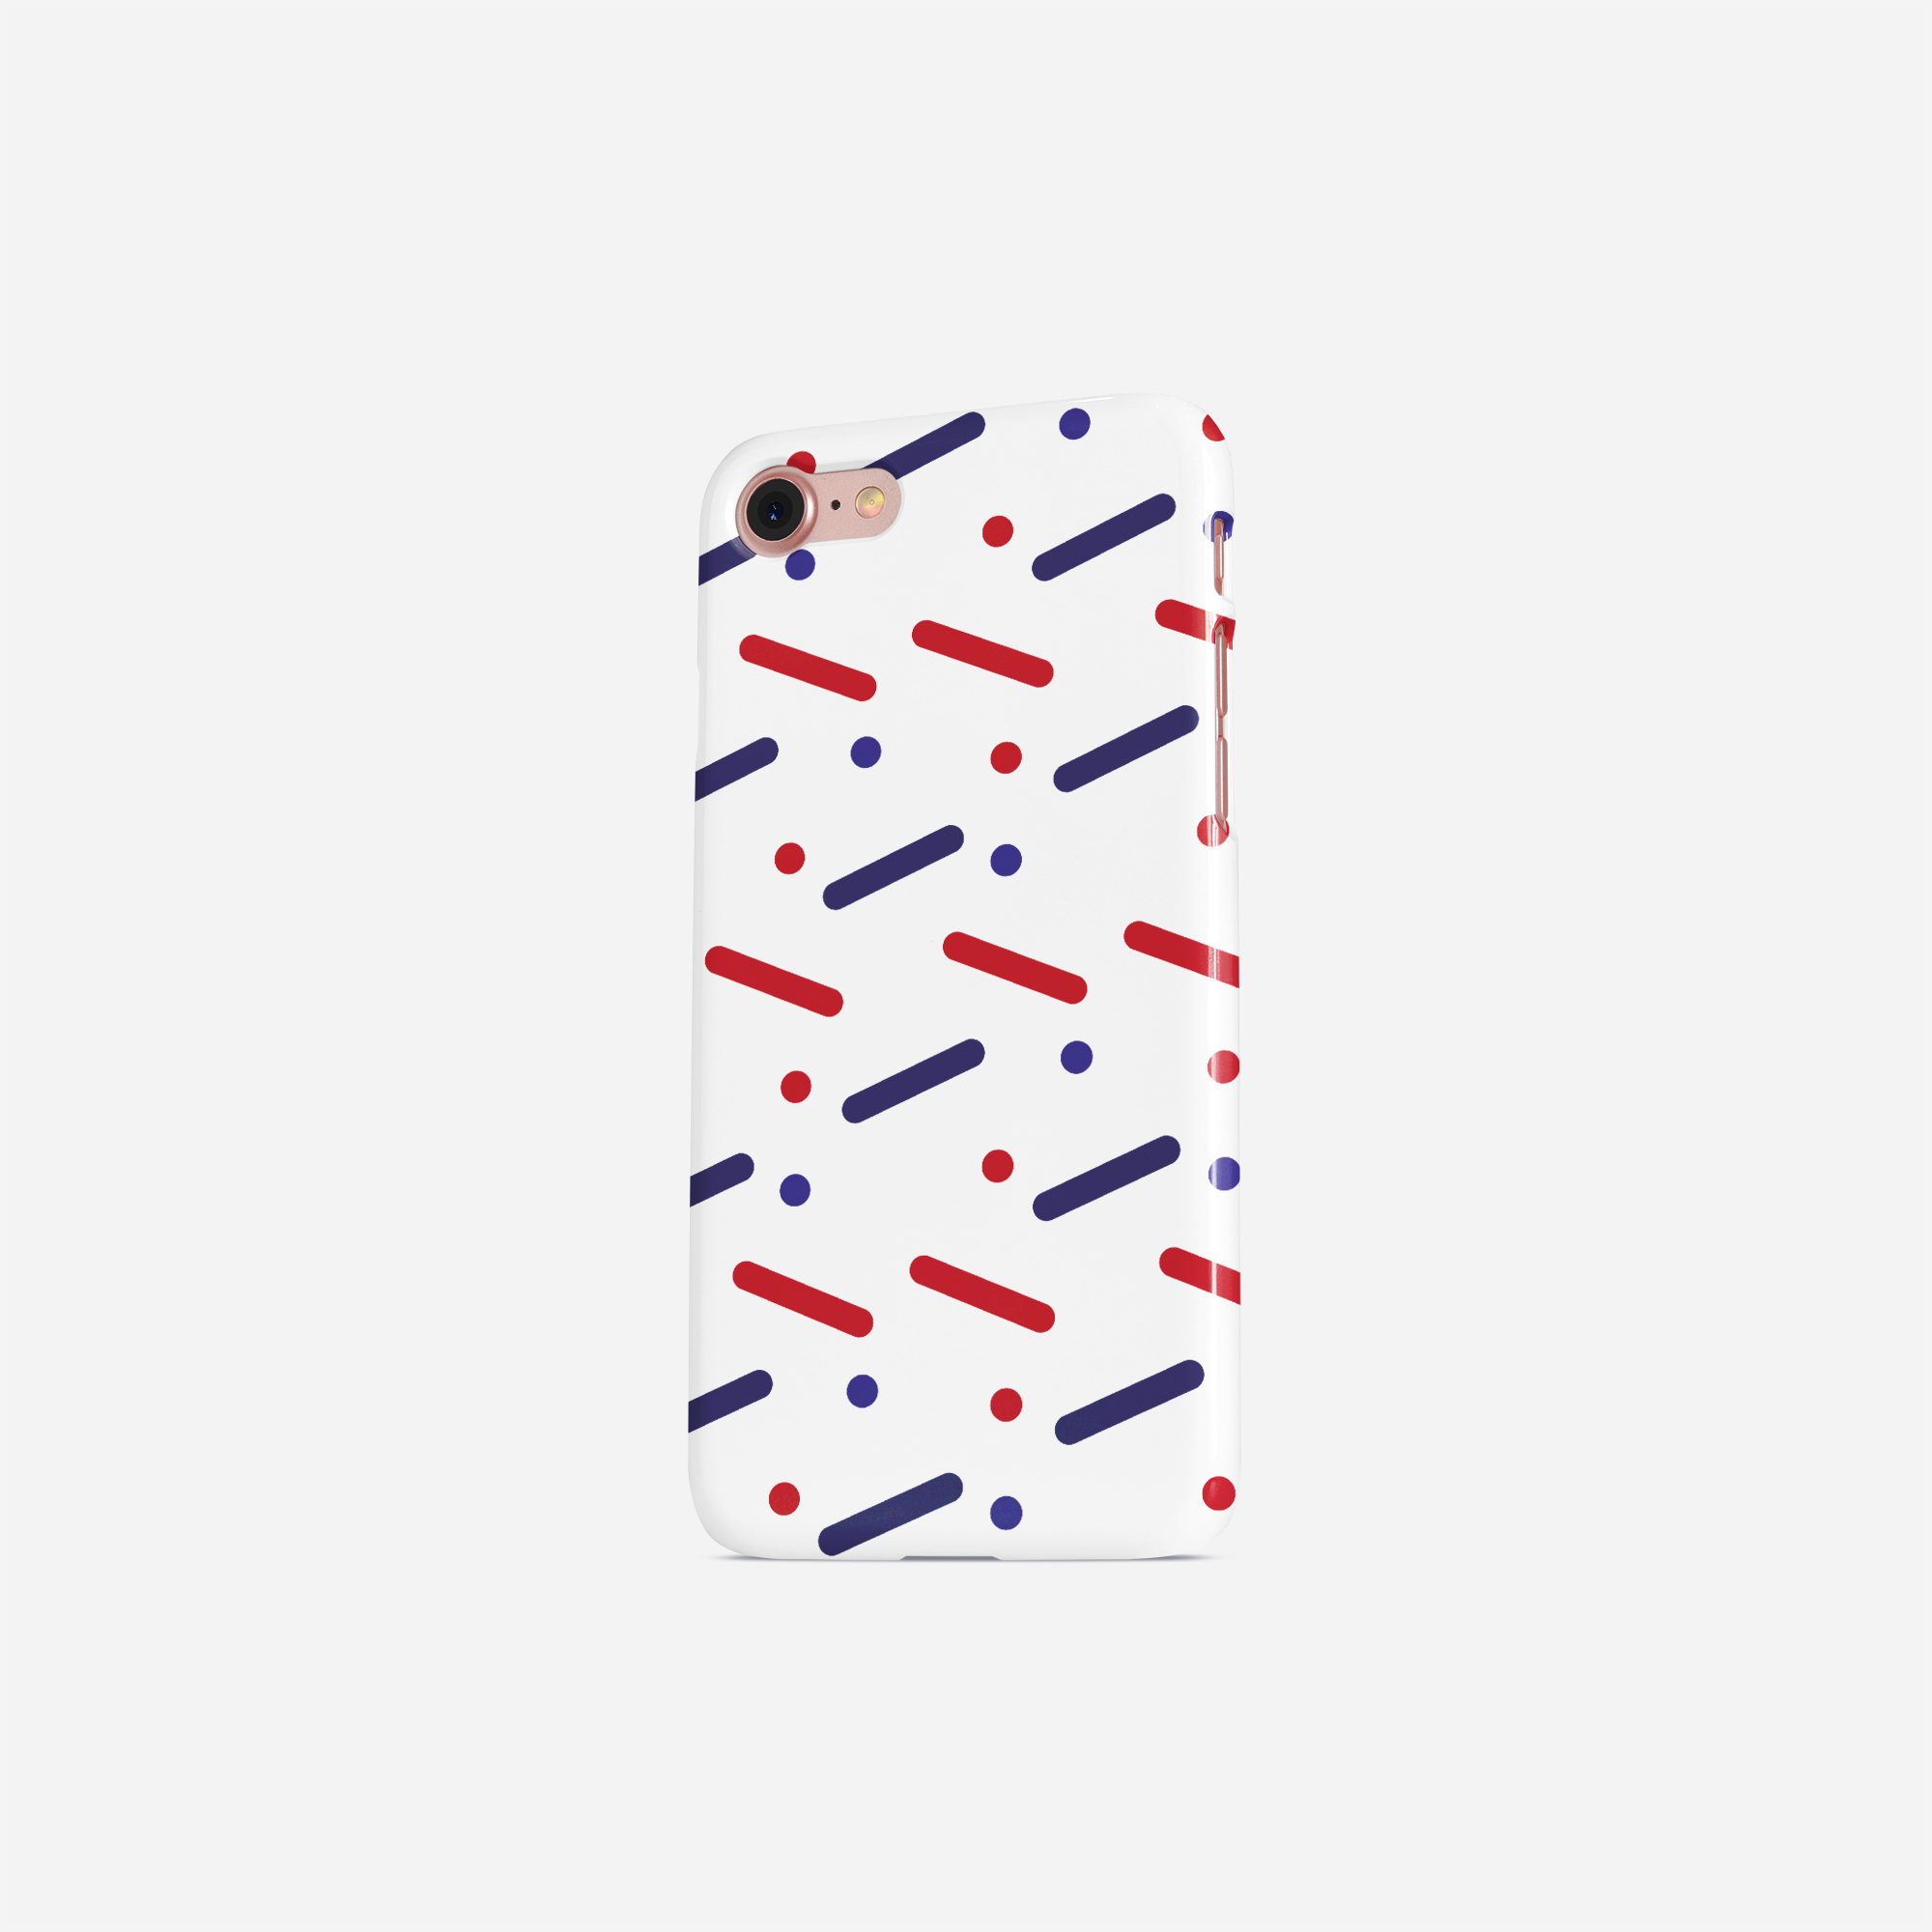 pattern-design-graphic-pois-bleu-blanc-rouge-1-coque-telephone-i-phone-samsung